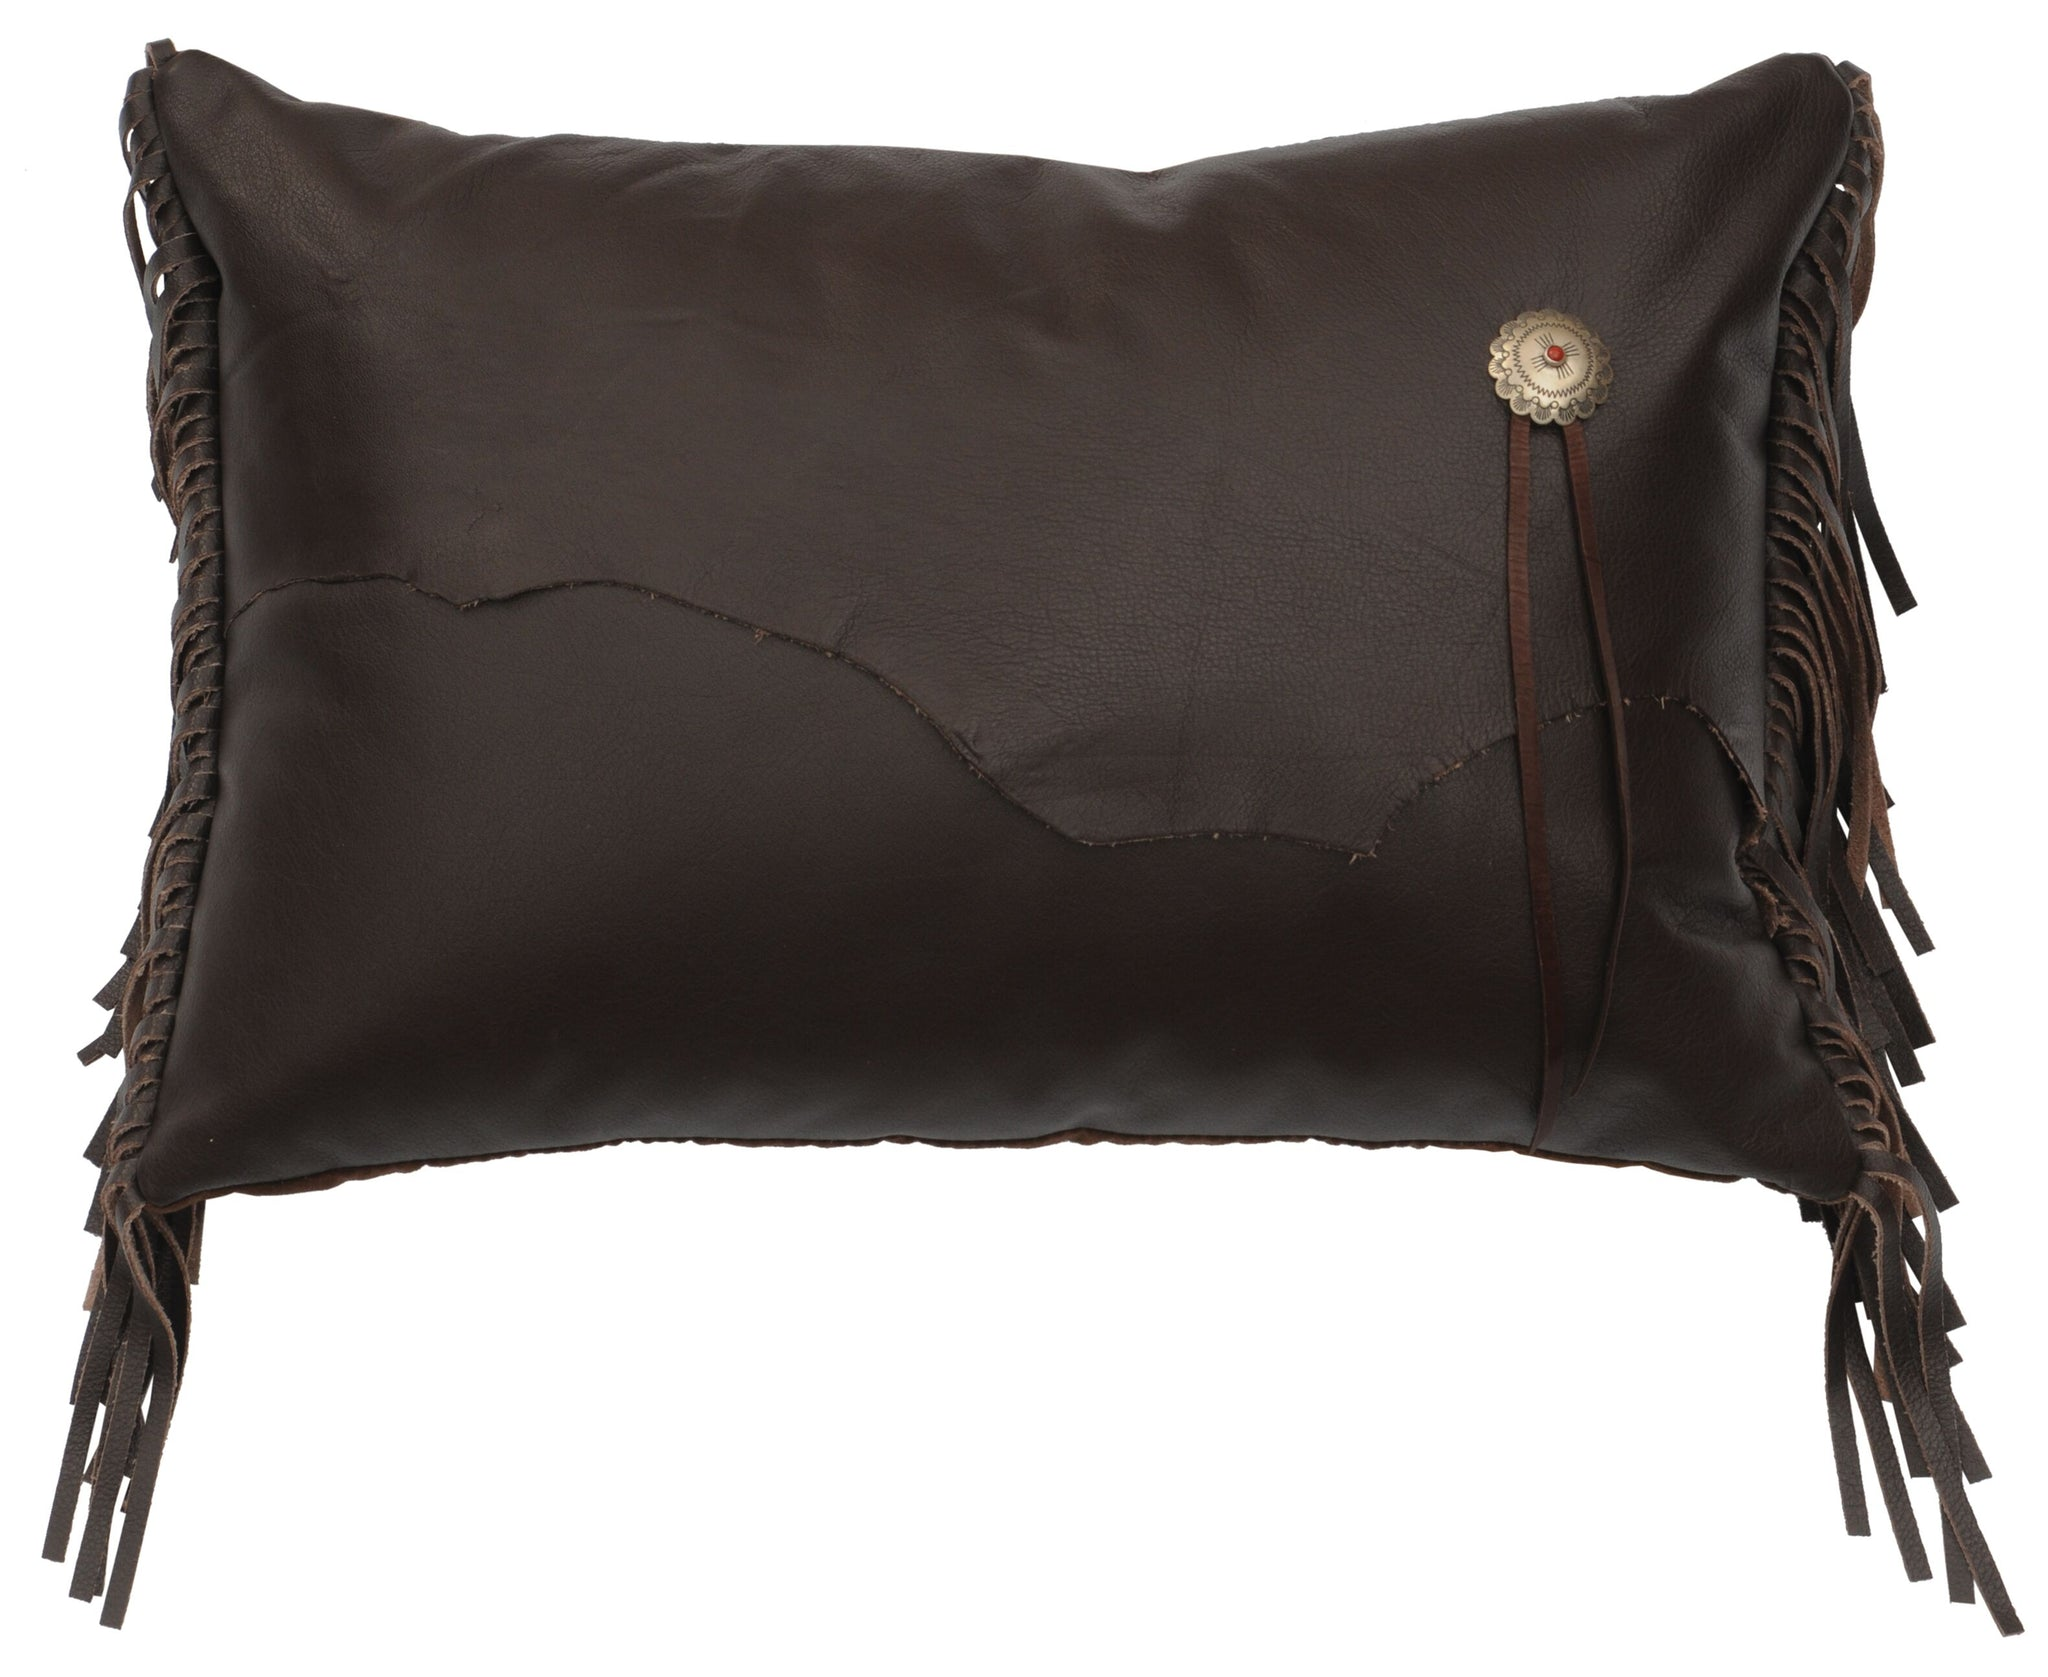 Leather Pillows Wooded River WD80259 - unique linens online